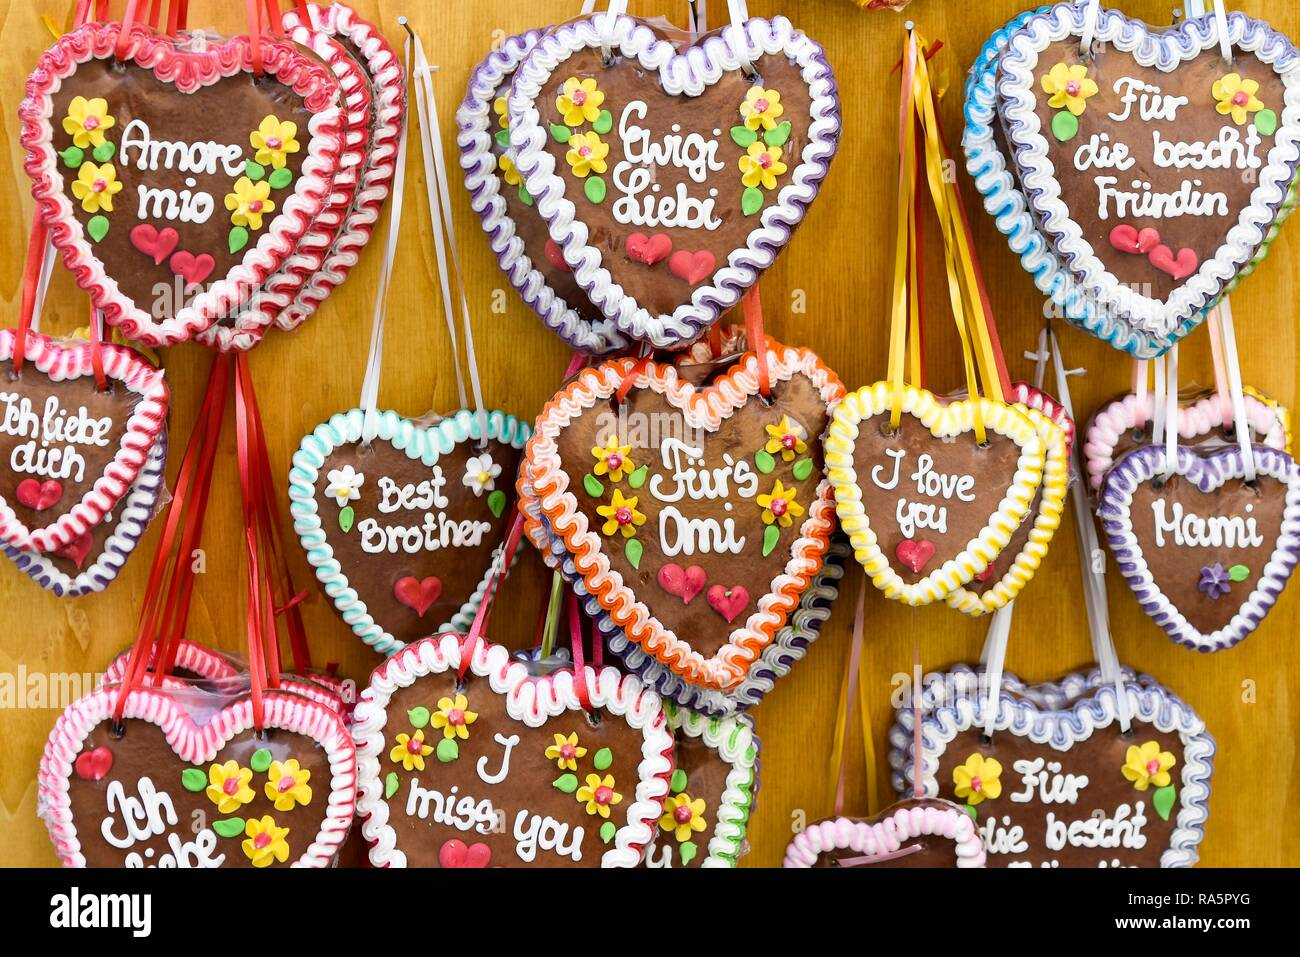 Gingerbread Hearts With Sayings Switzerland Stock Photo 230009124